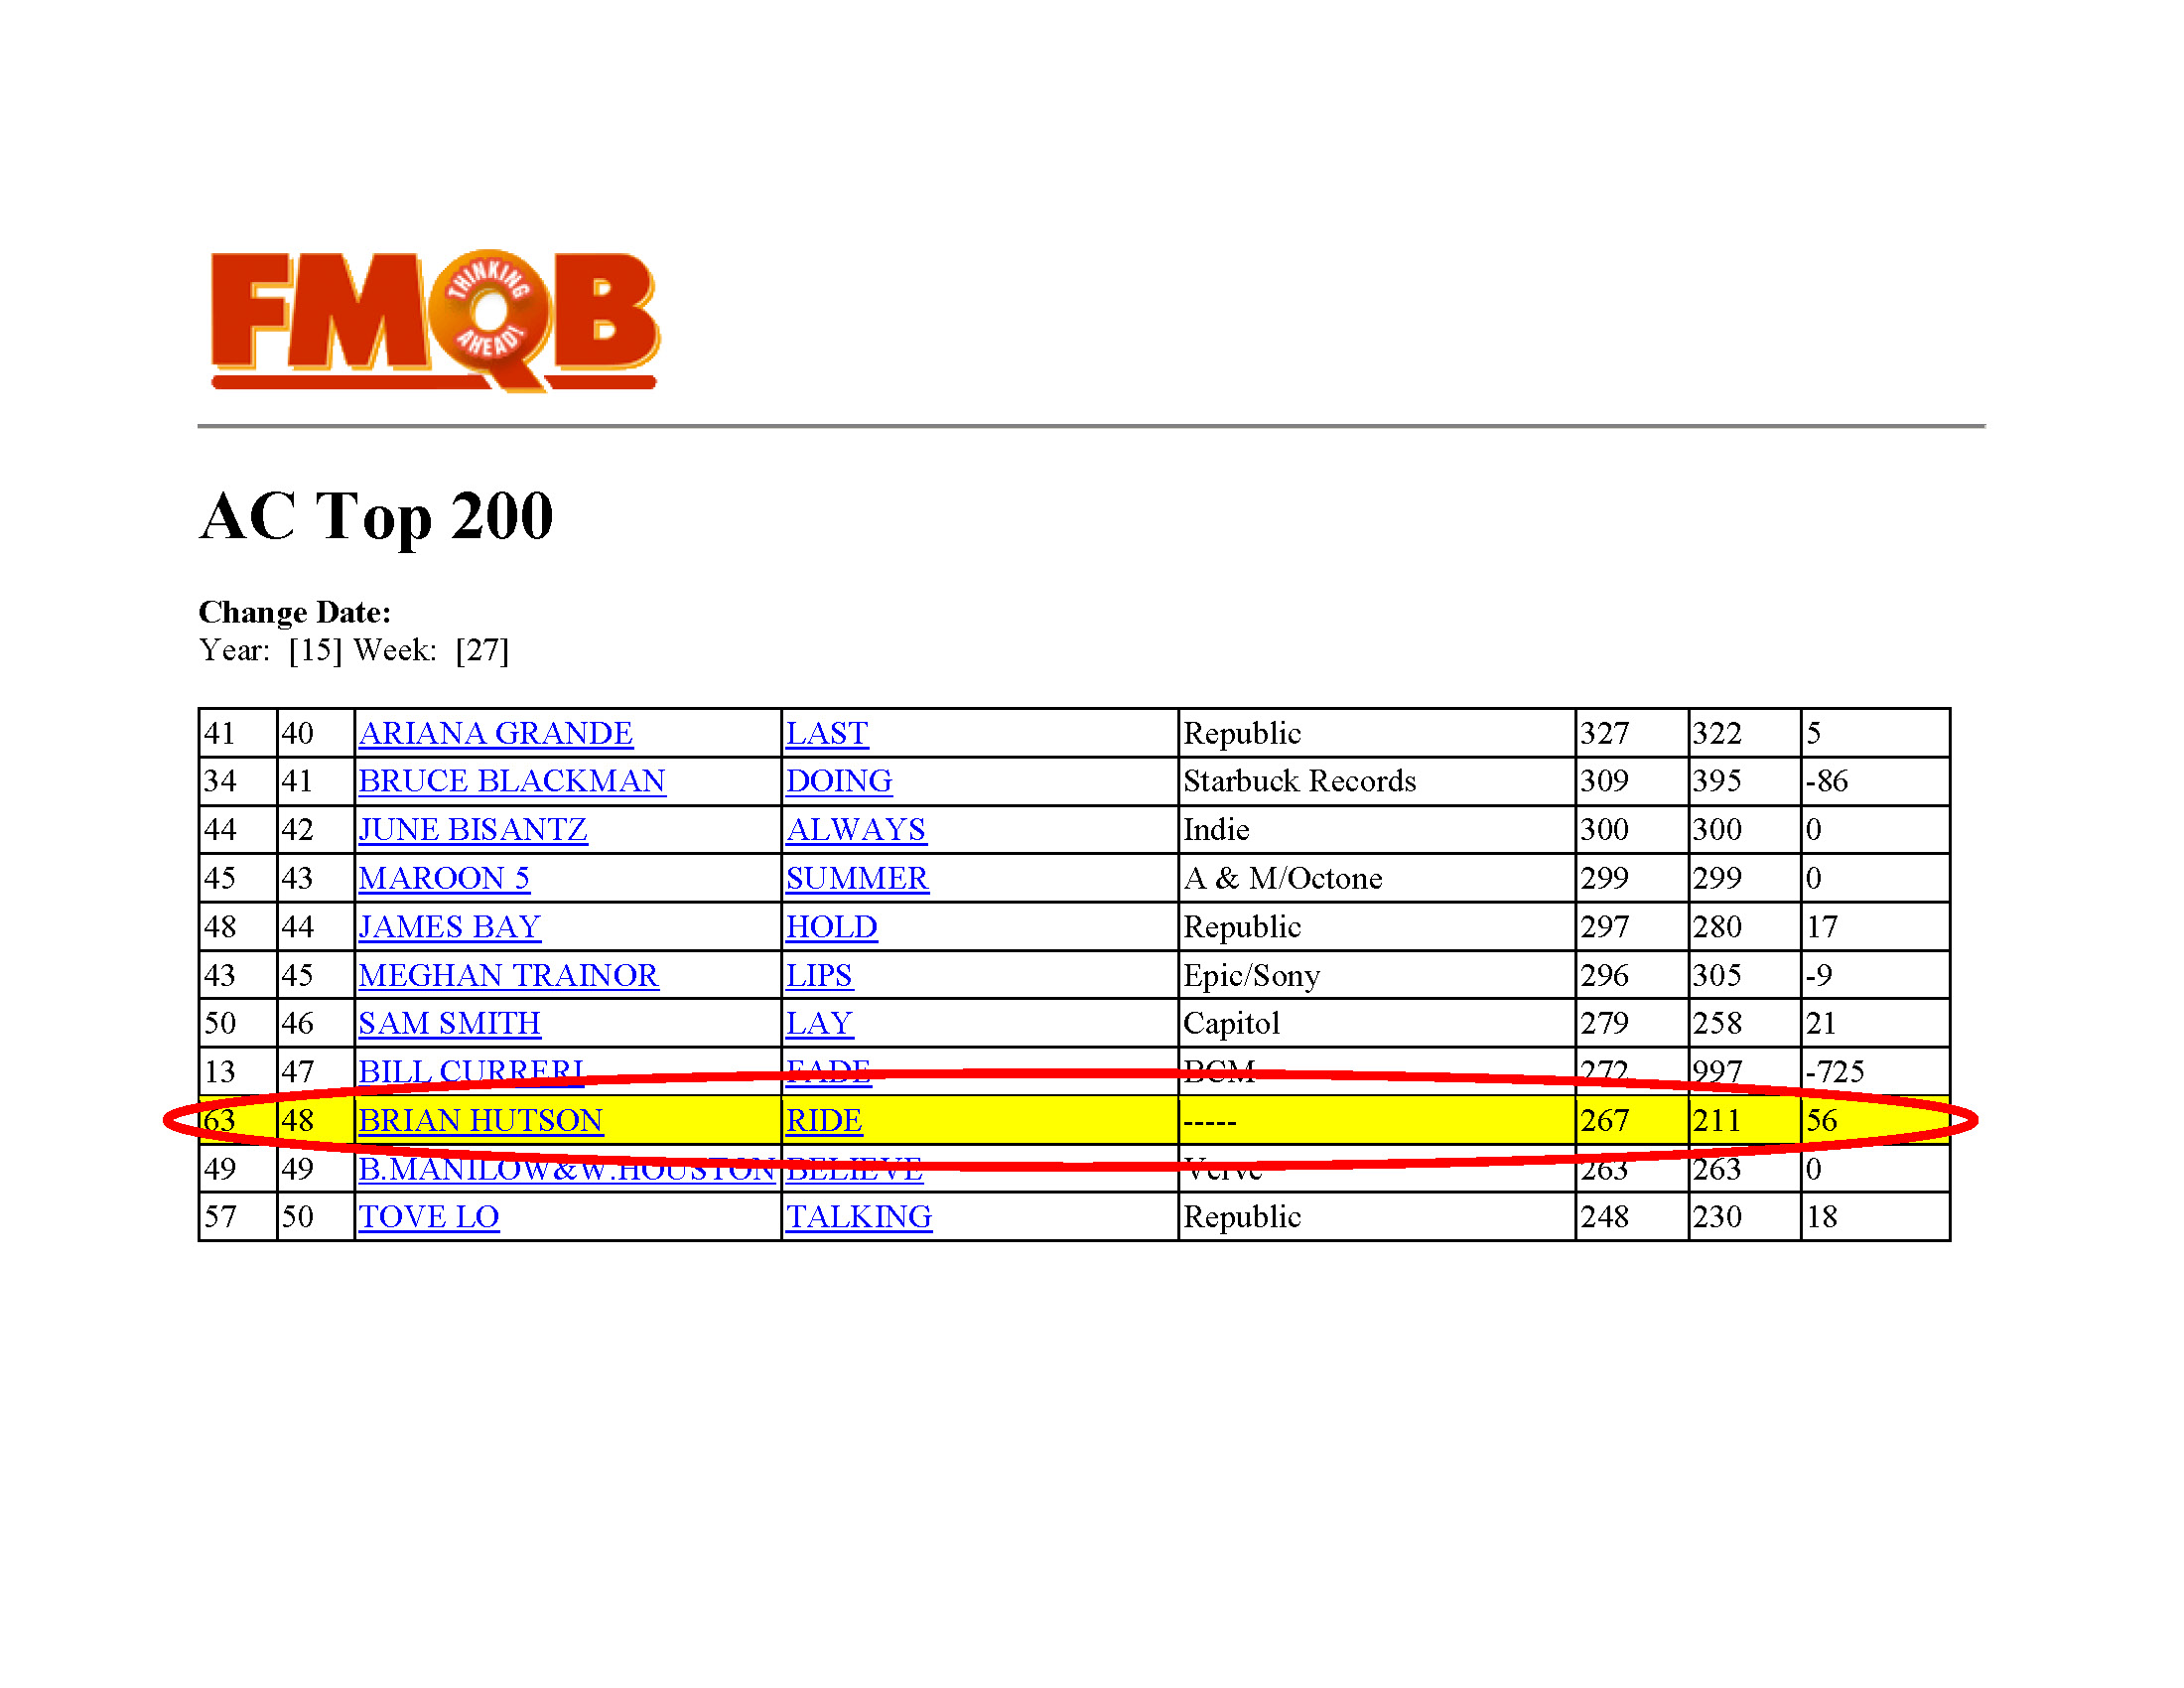 Brian Hutson Let it Ride in the AC Top 200 July 2015